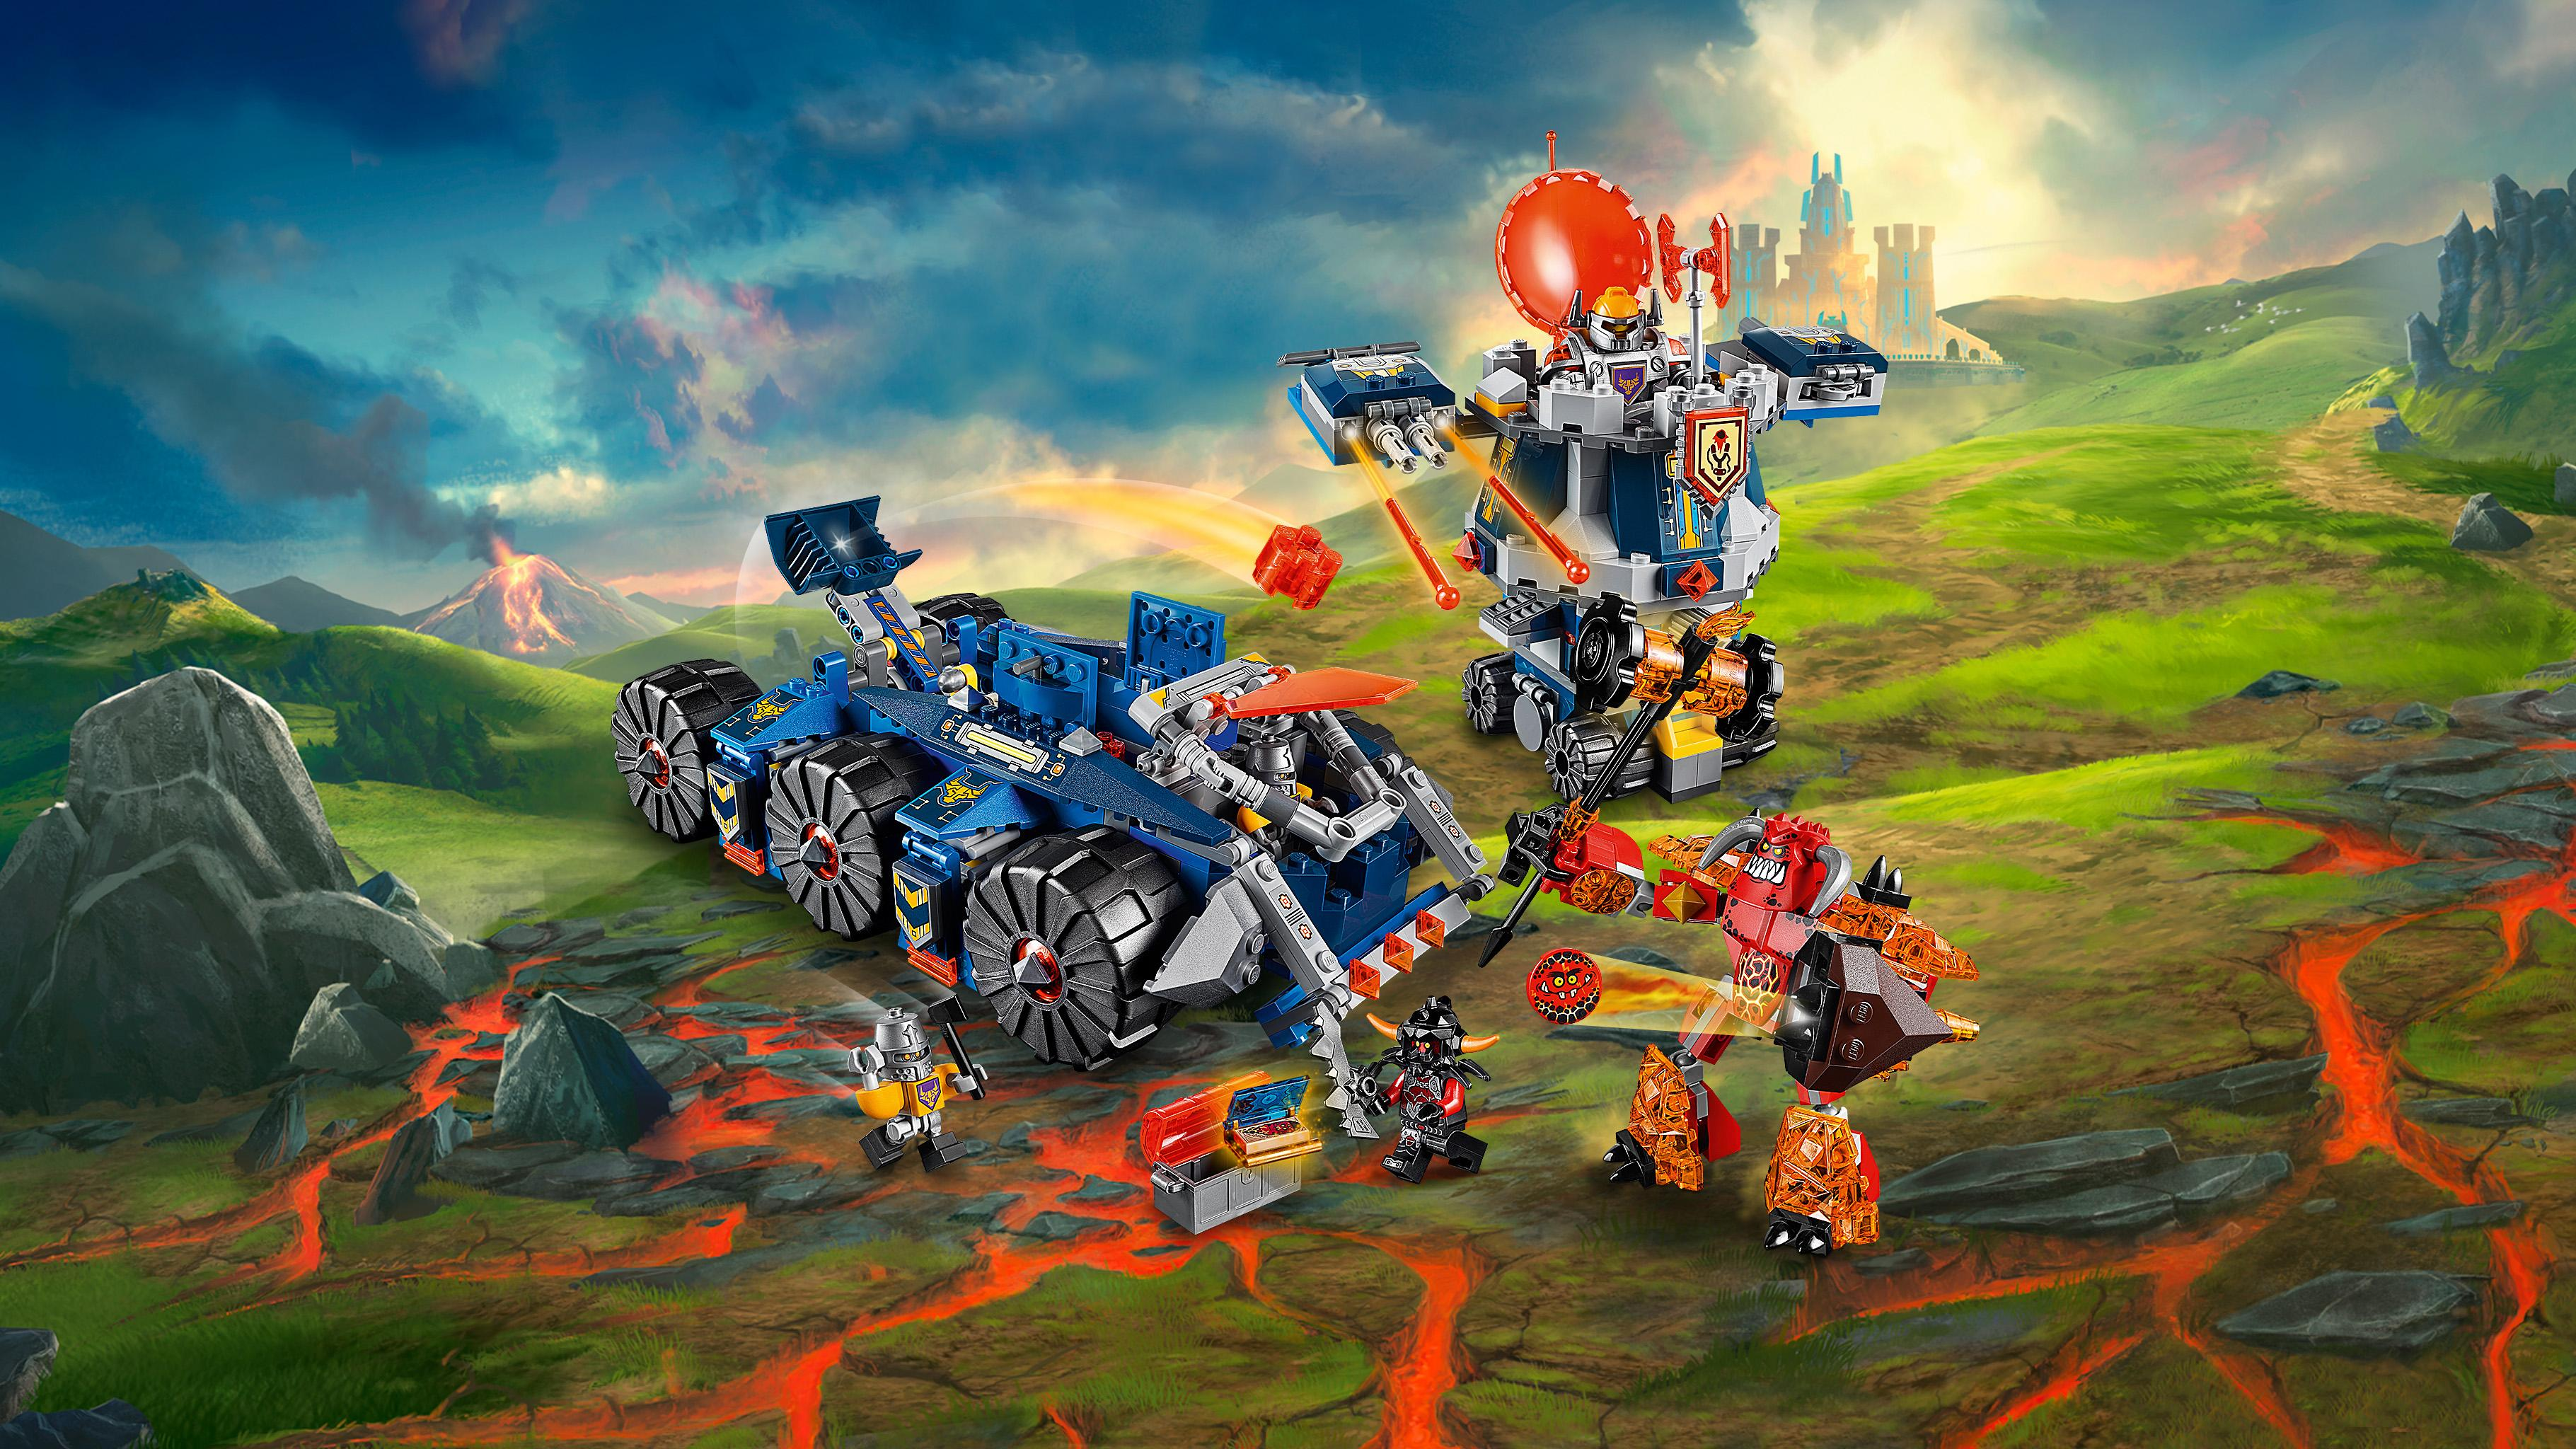 lego 70322 nexo knights jeu de construction le transporteur de tour d 39 axl. Black Bedroom Furniture Sets. Home Design Ideas